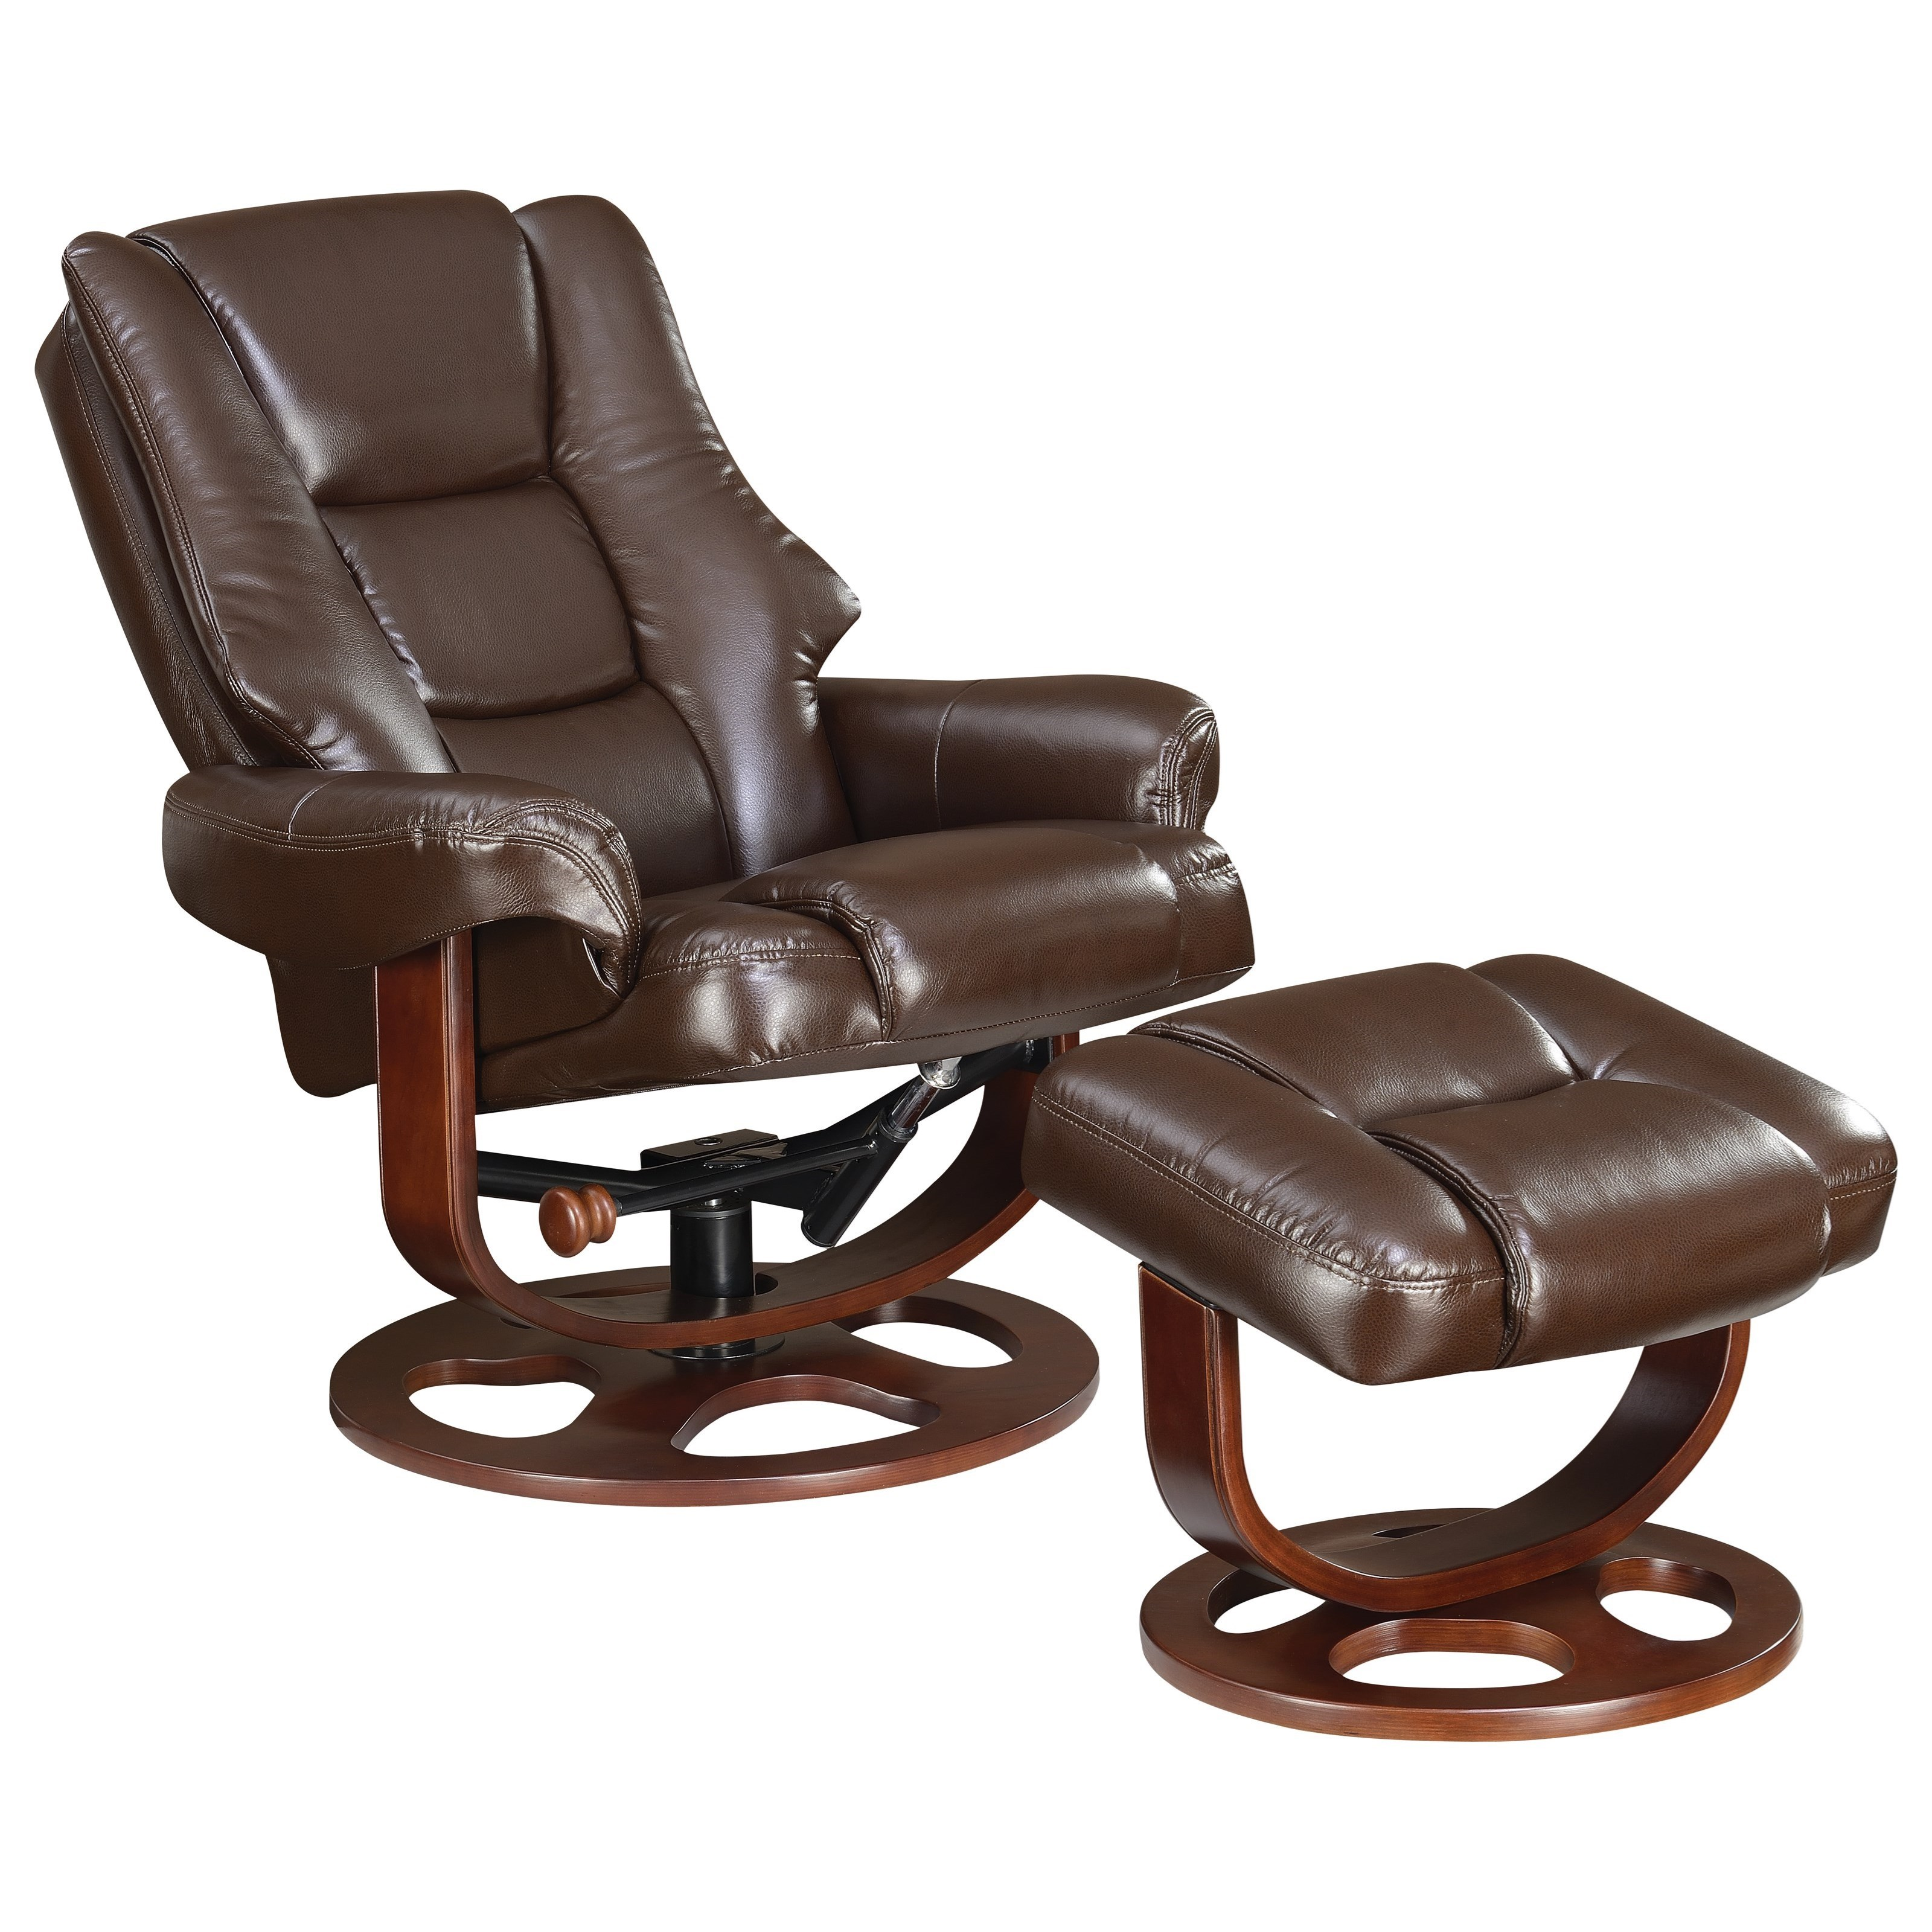 Coaster Recliners with Ottomans 600086 Plush Recliner and